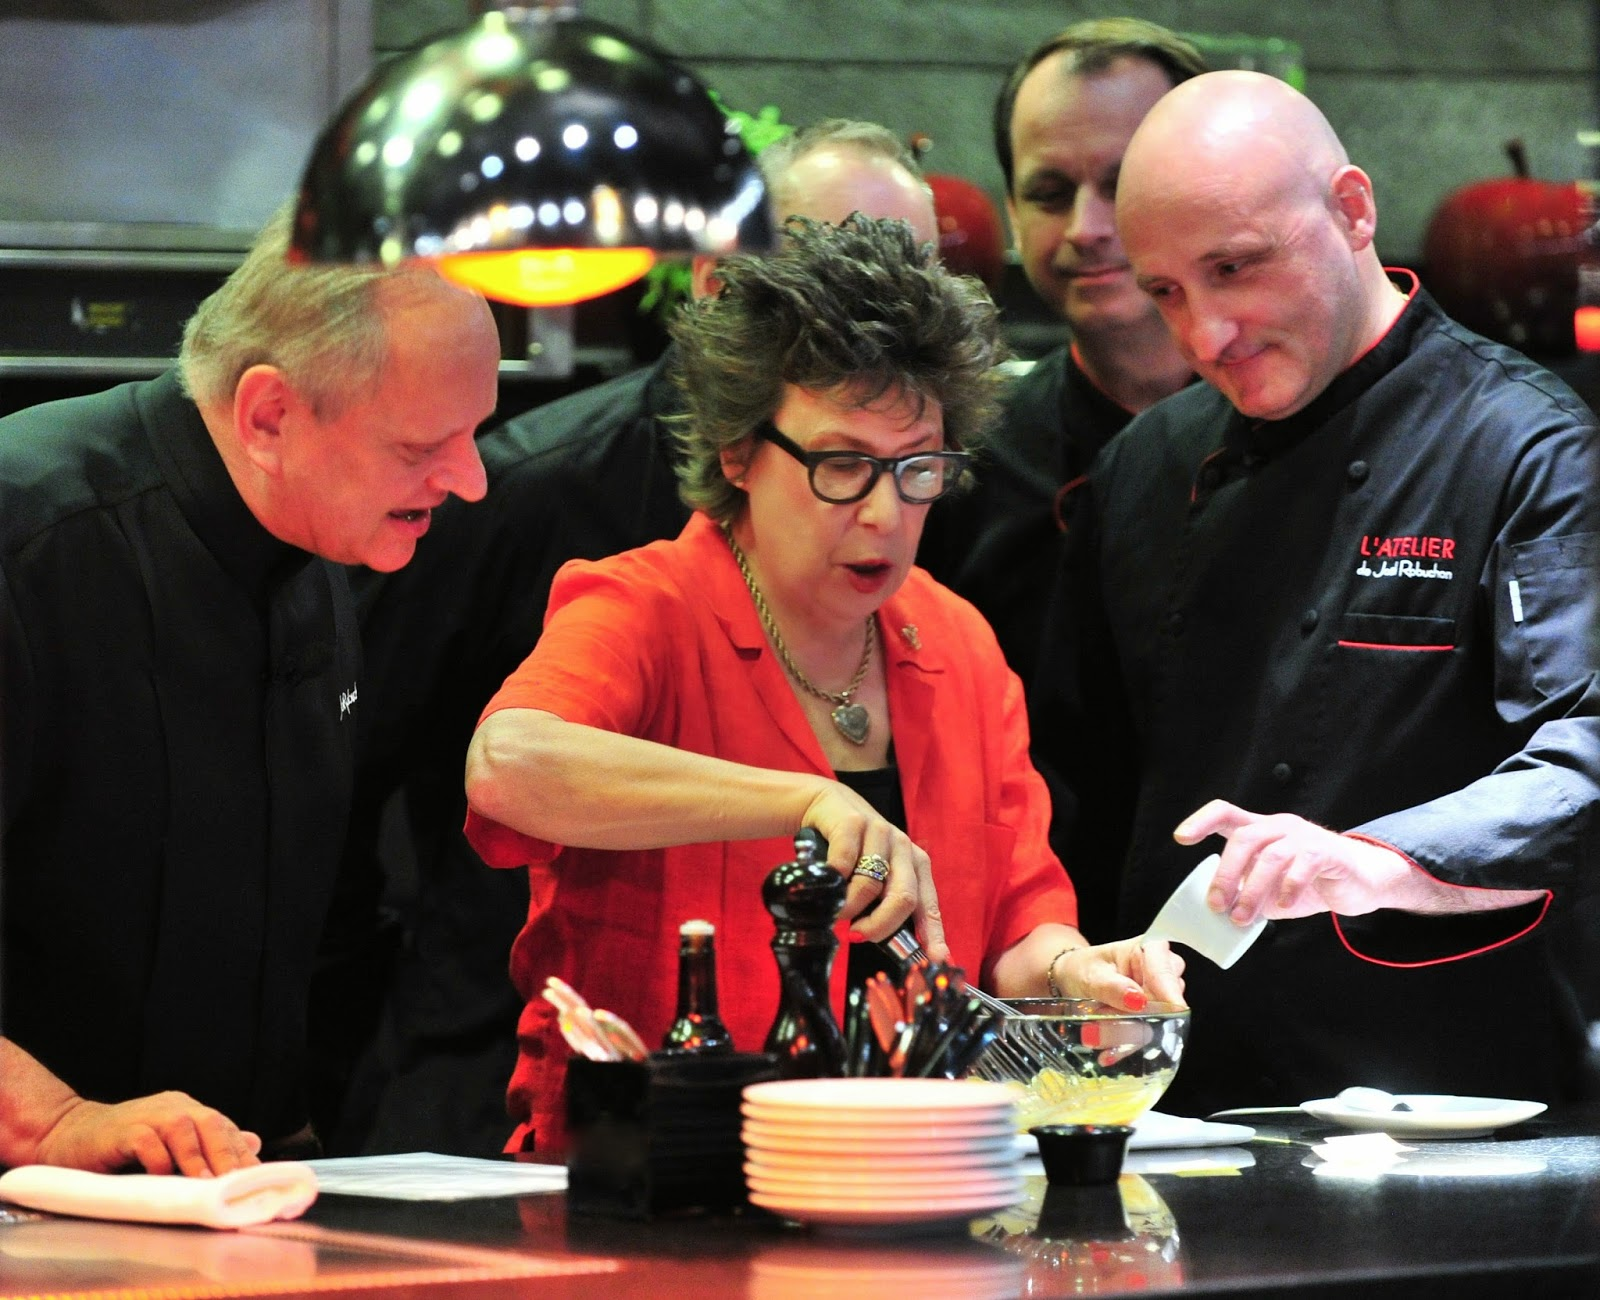 Vegas Uncork'd 2014 Joel Robuchon cooking demo with celebrity food stylist Alice Hart L'Atelier de Joel Robuchon